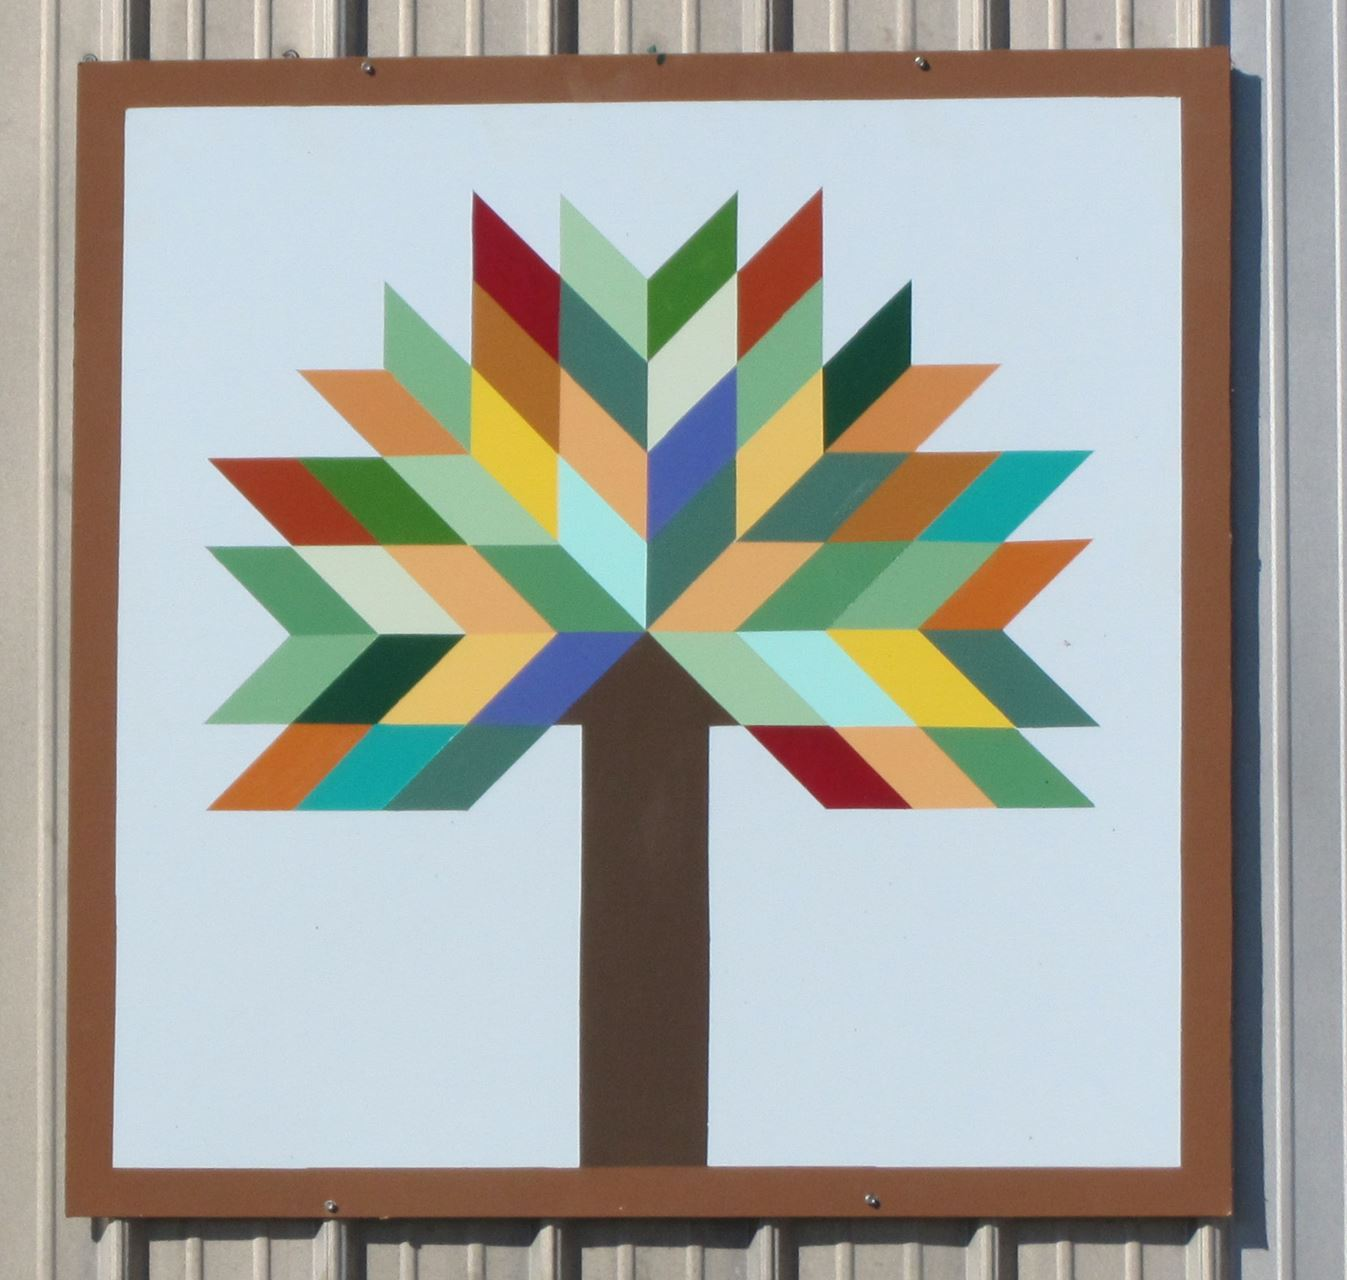 quilt-square-tree-pattern